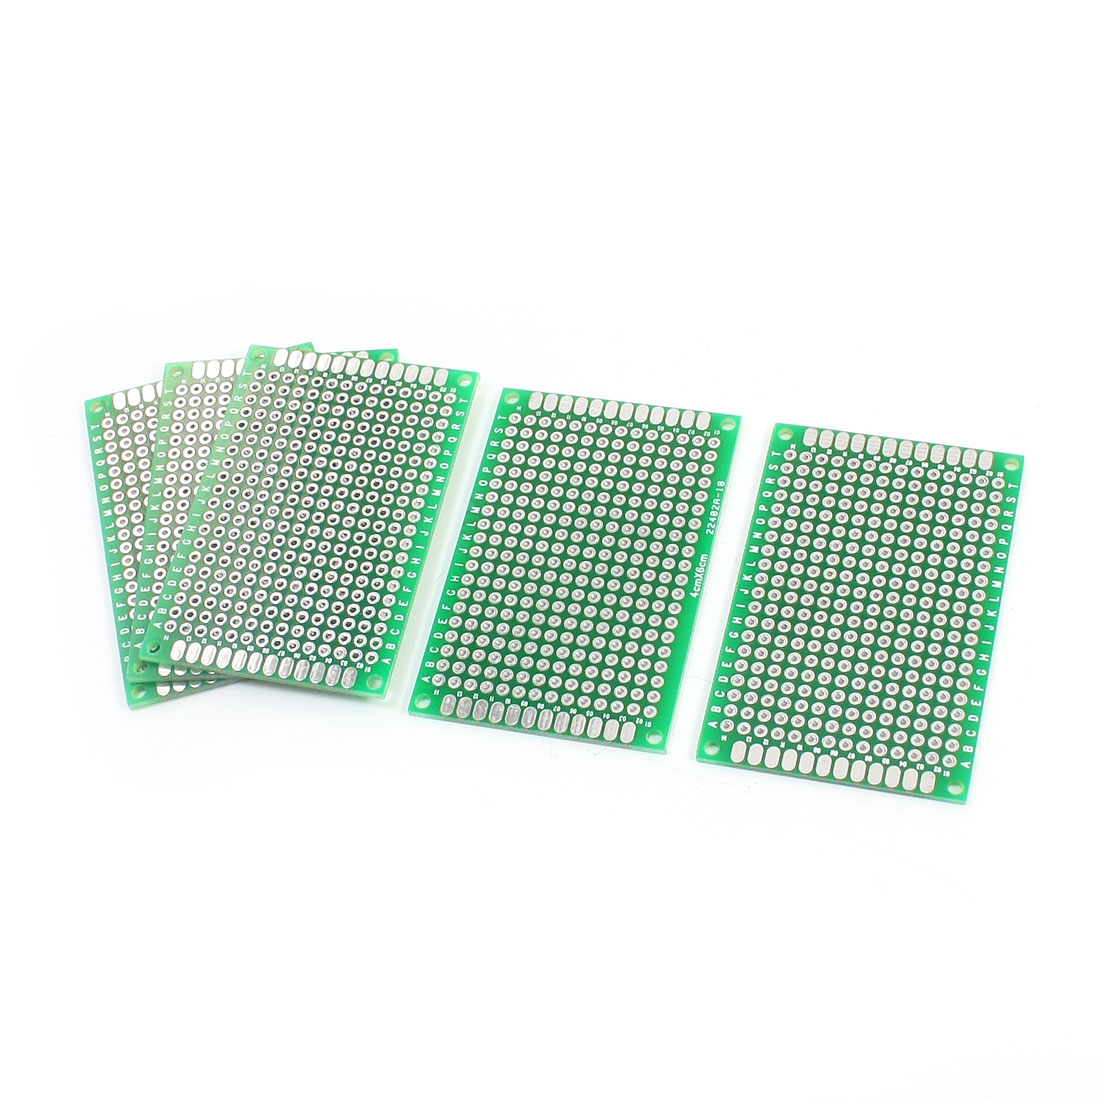 6cm x 4cm Dual Side Solderable Prototype Universal PCB Circuit Board 5PCS